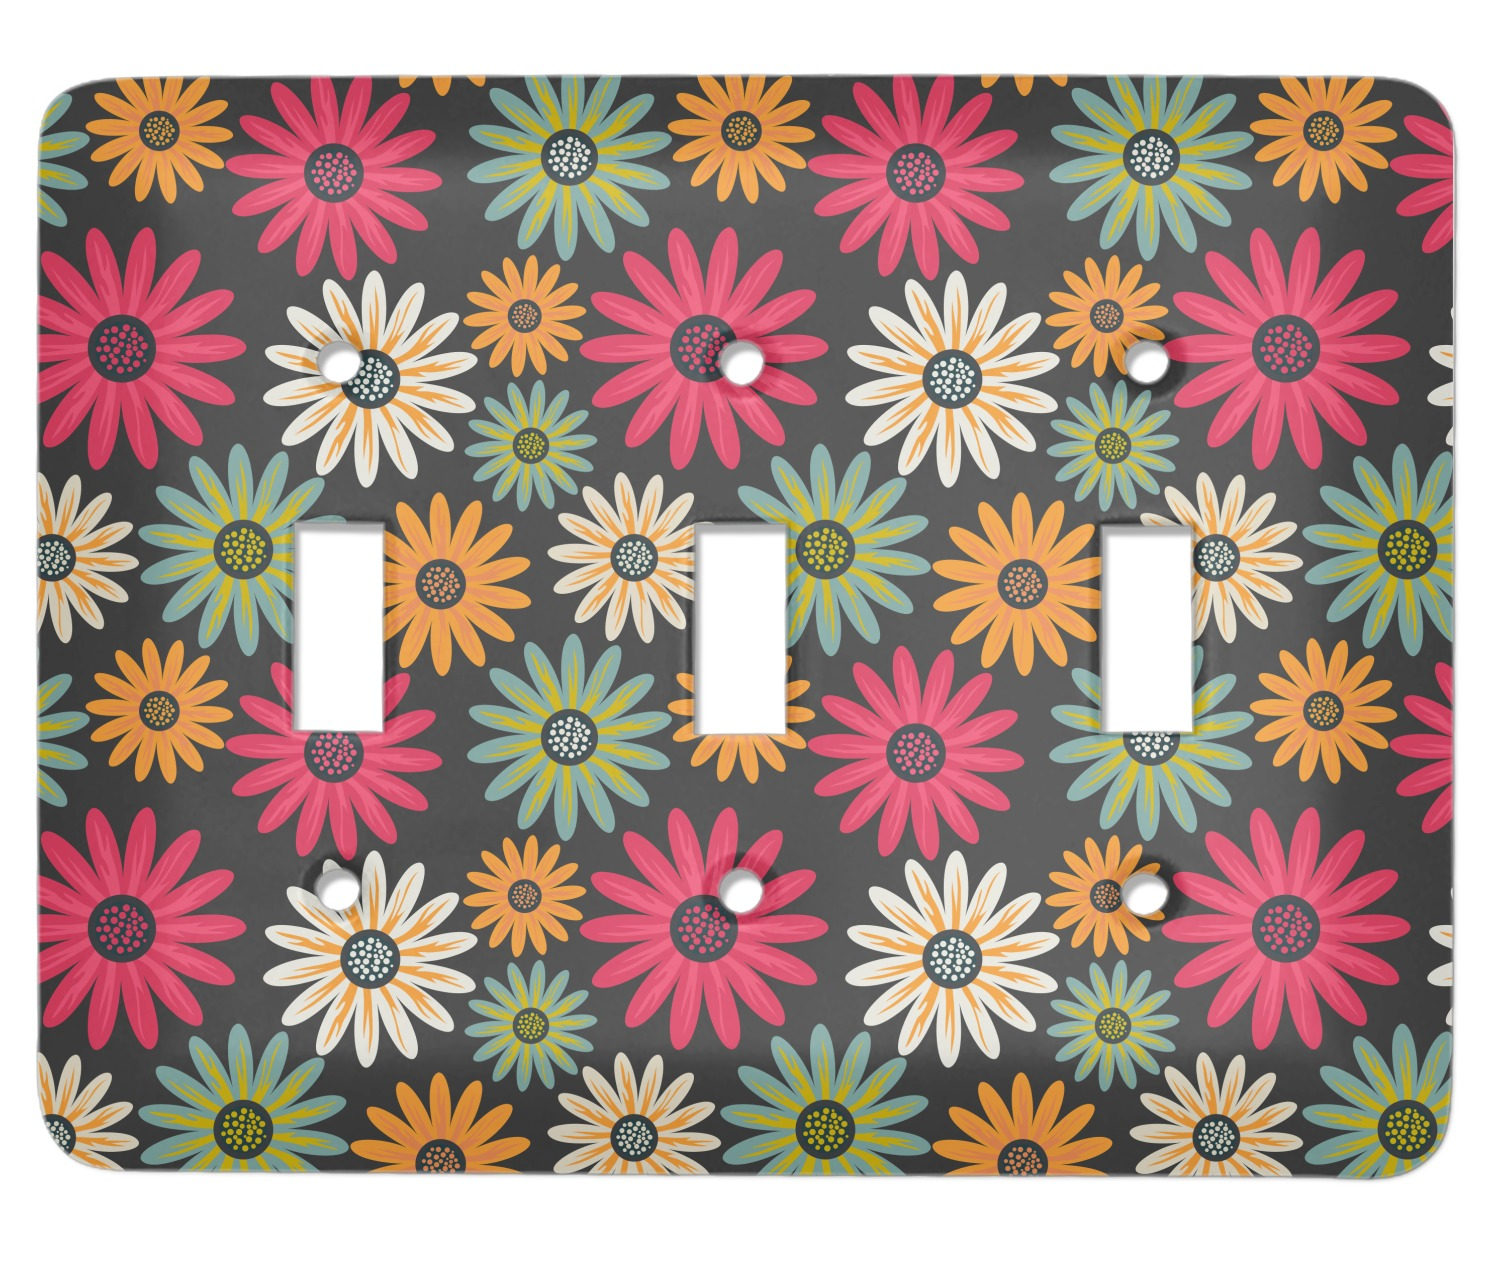 Daisies Light Switch Cover 3 Toggle Plate Personalized